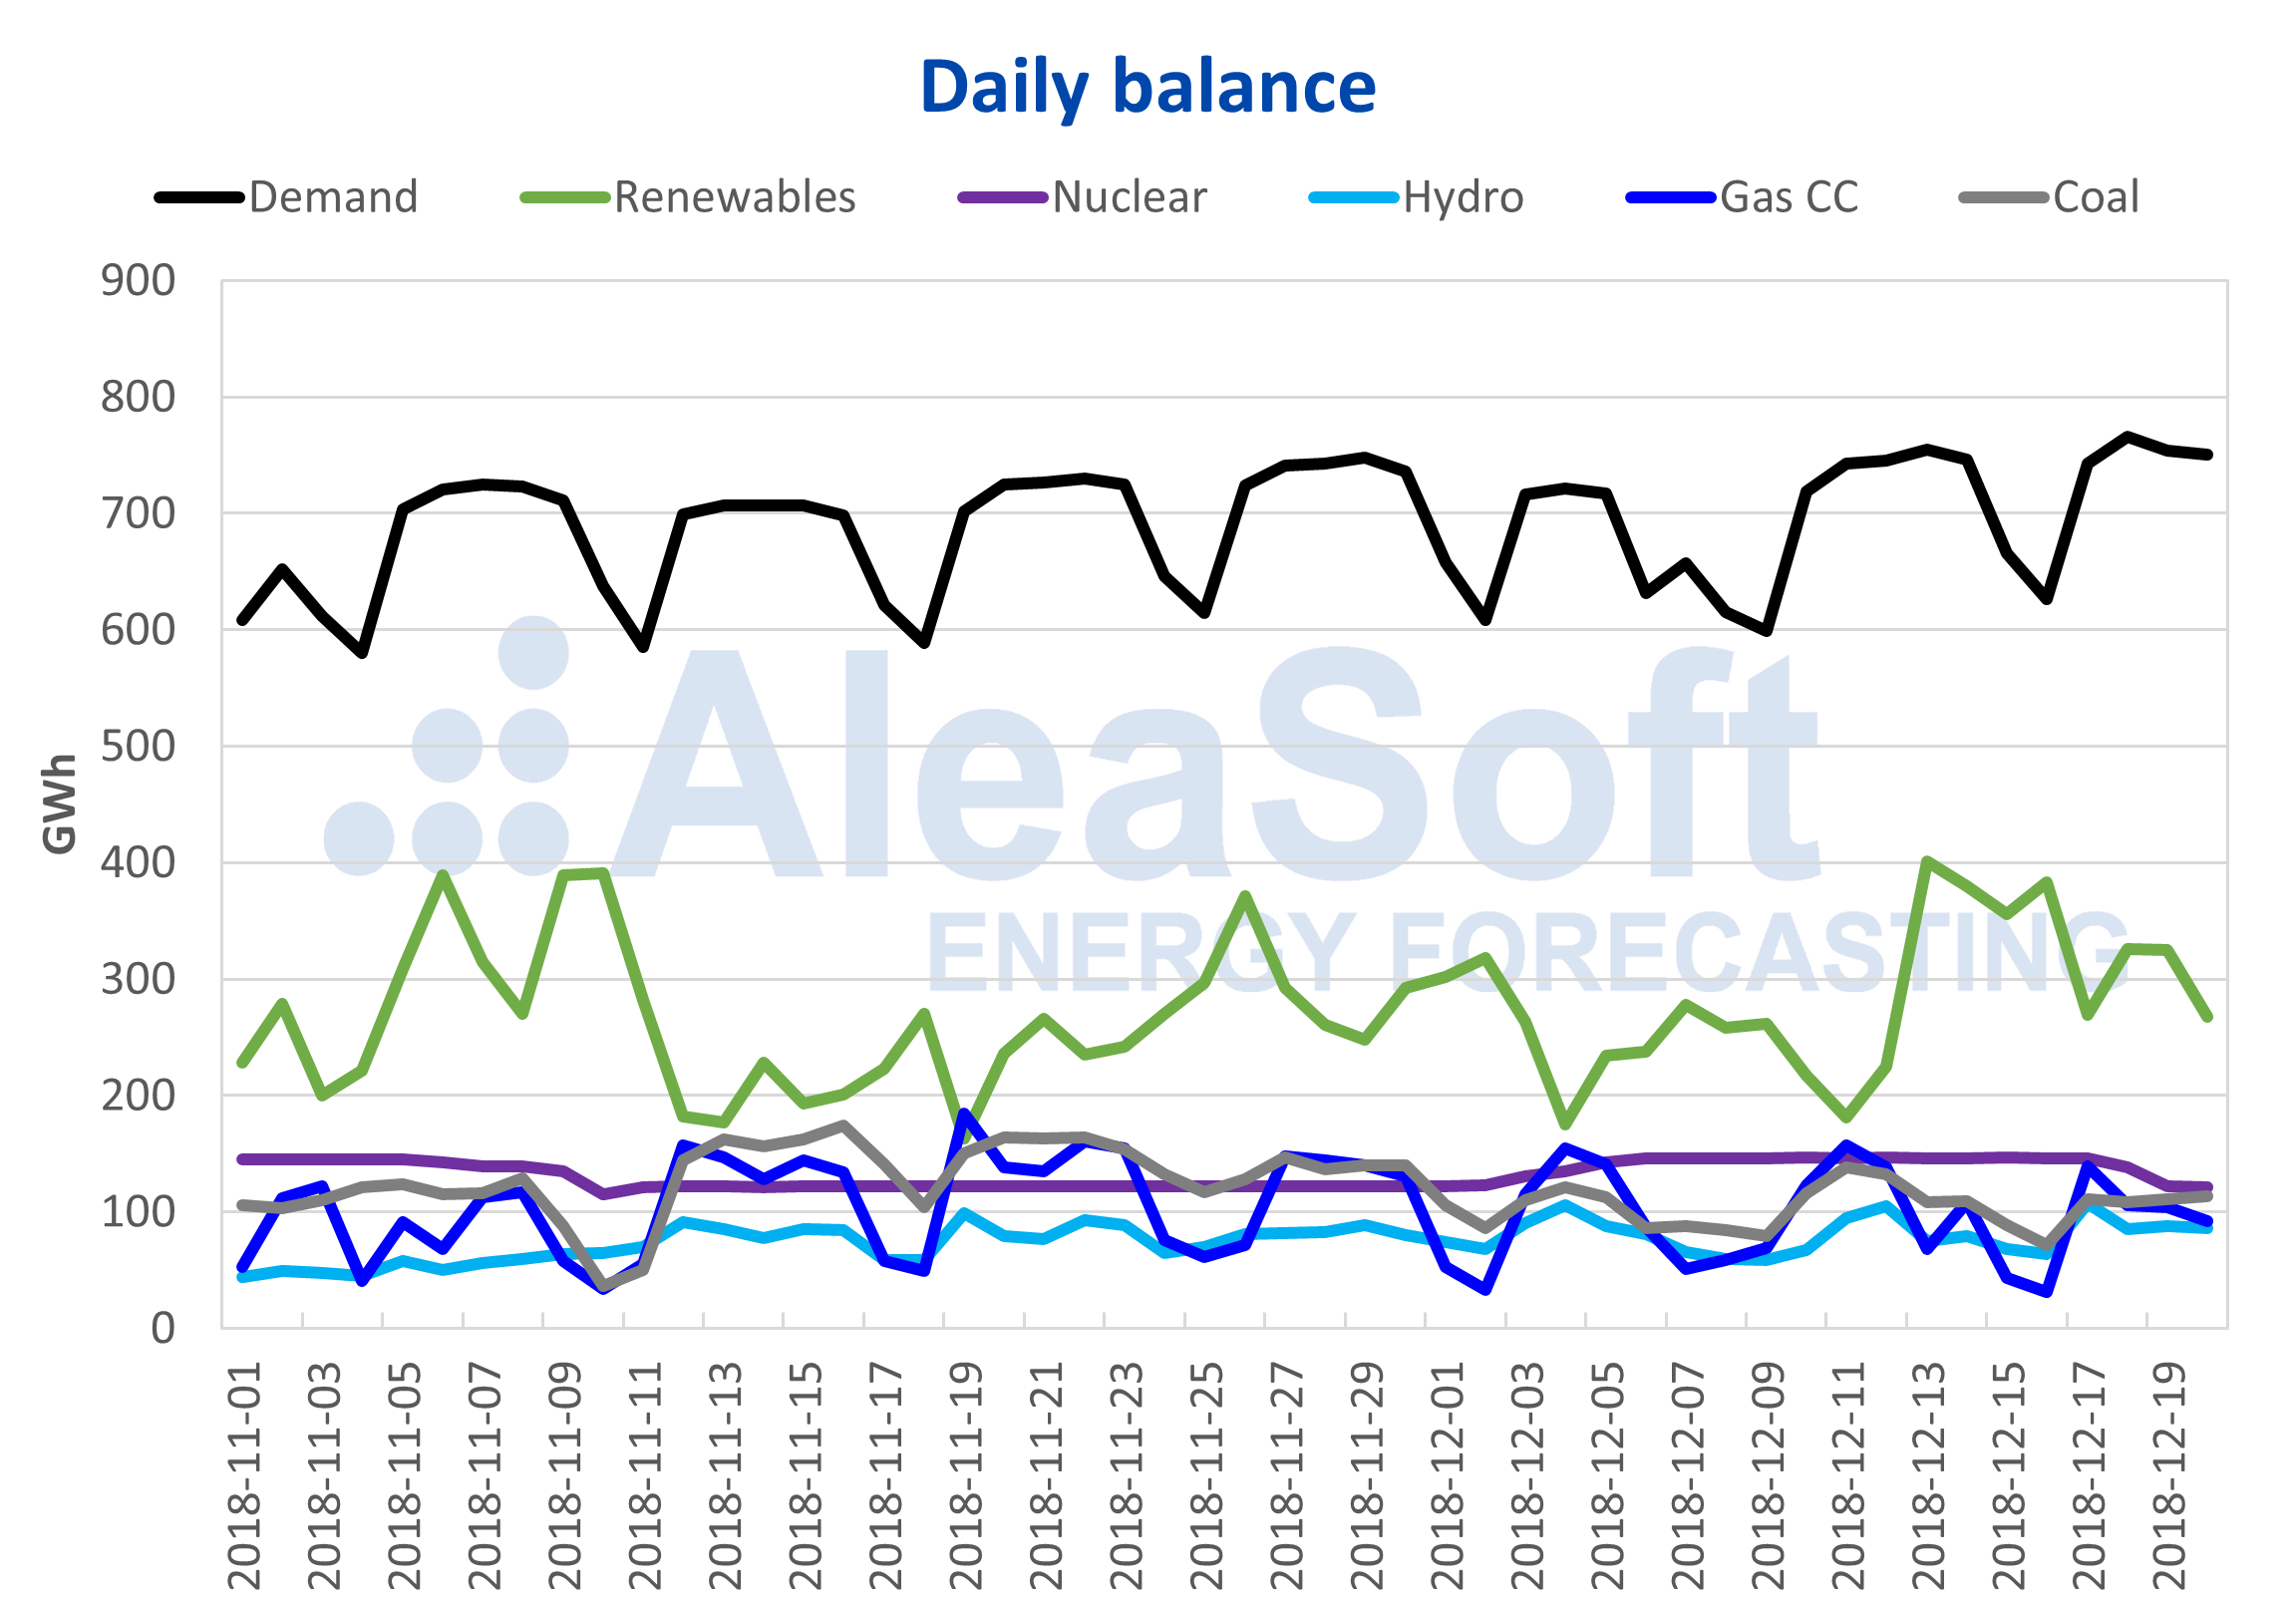 AleaSoft - Daily electricity demand balance in Spain